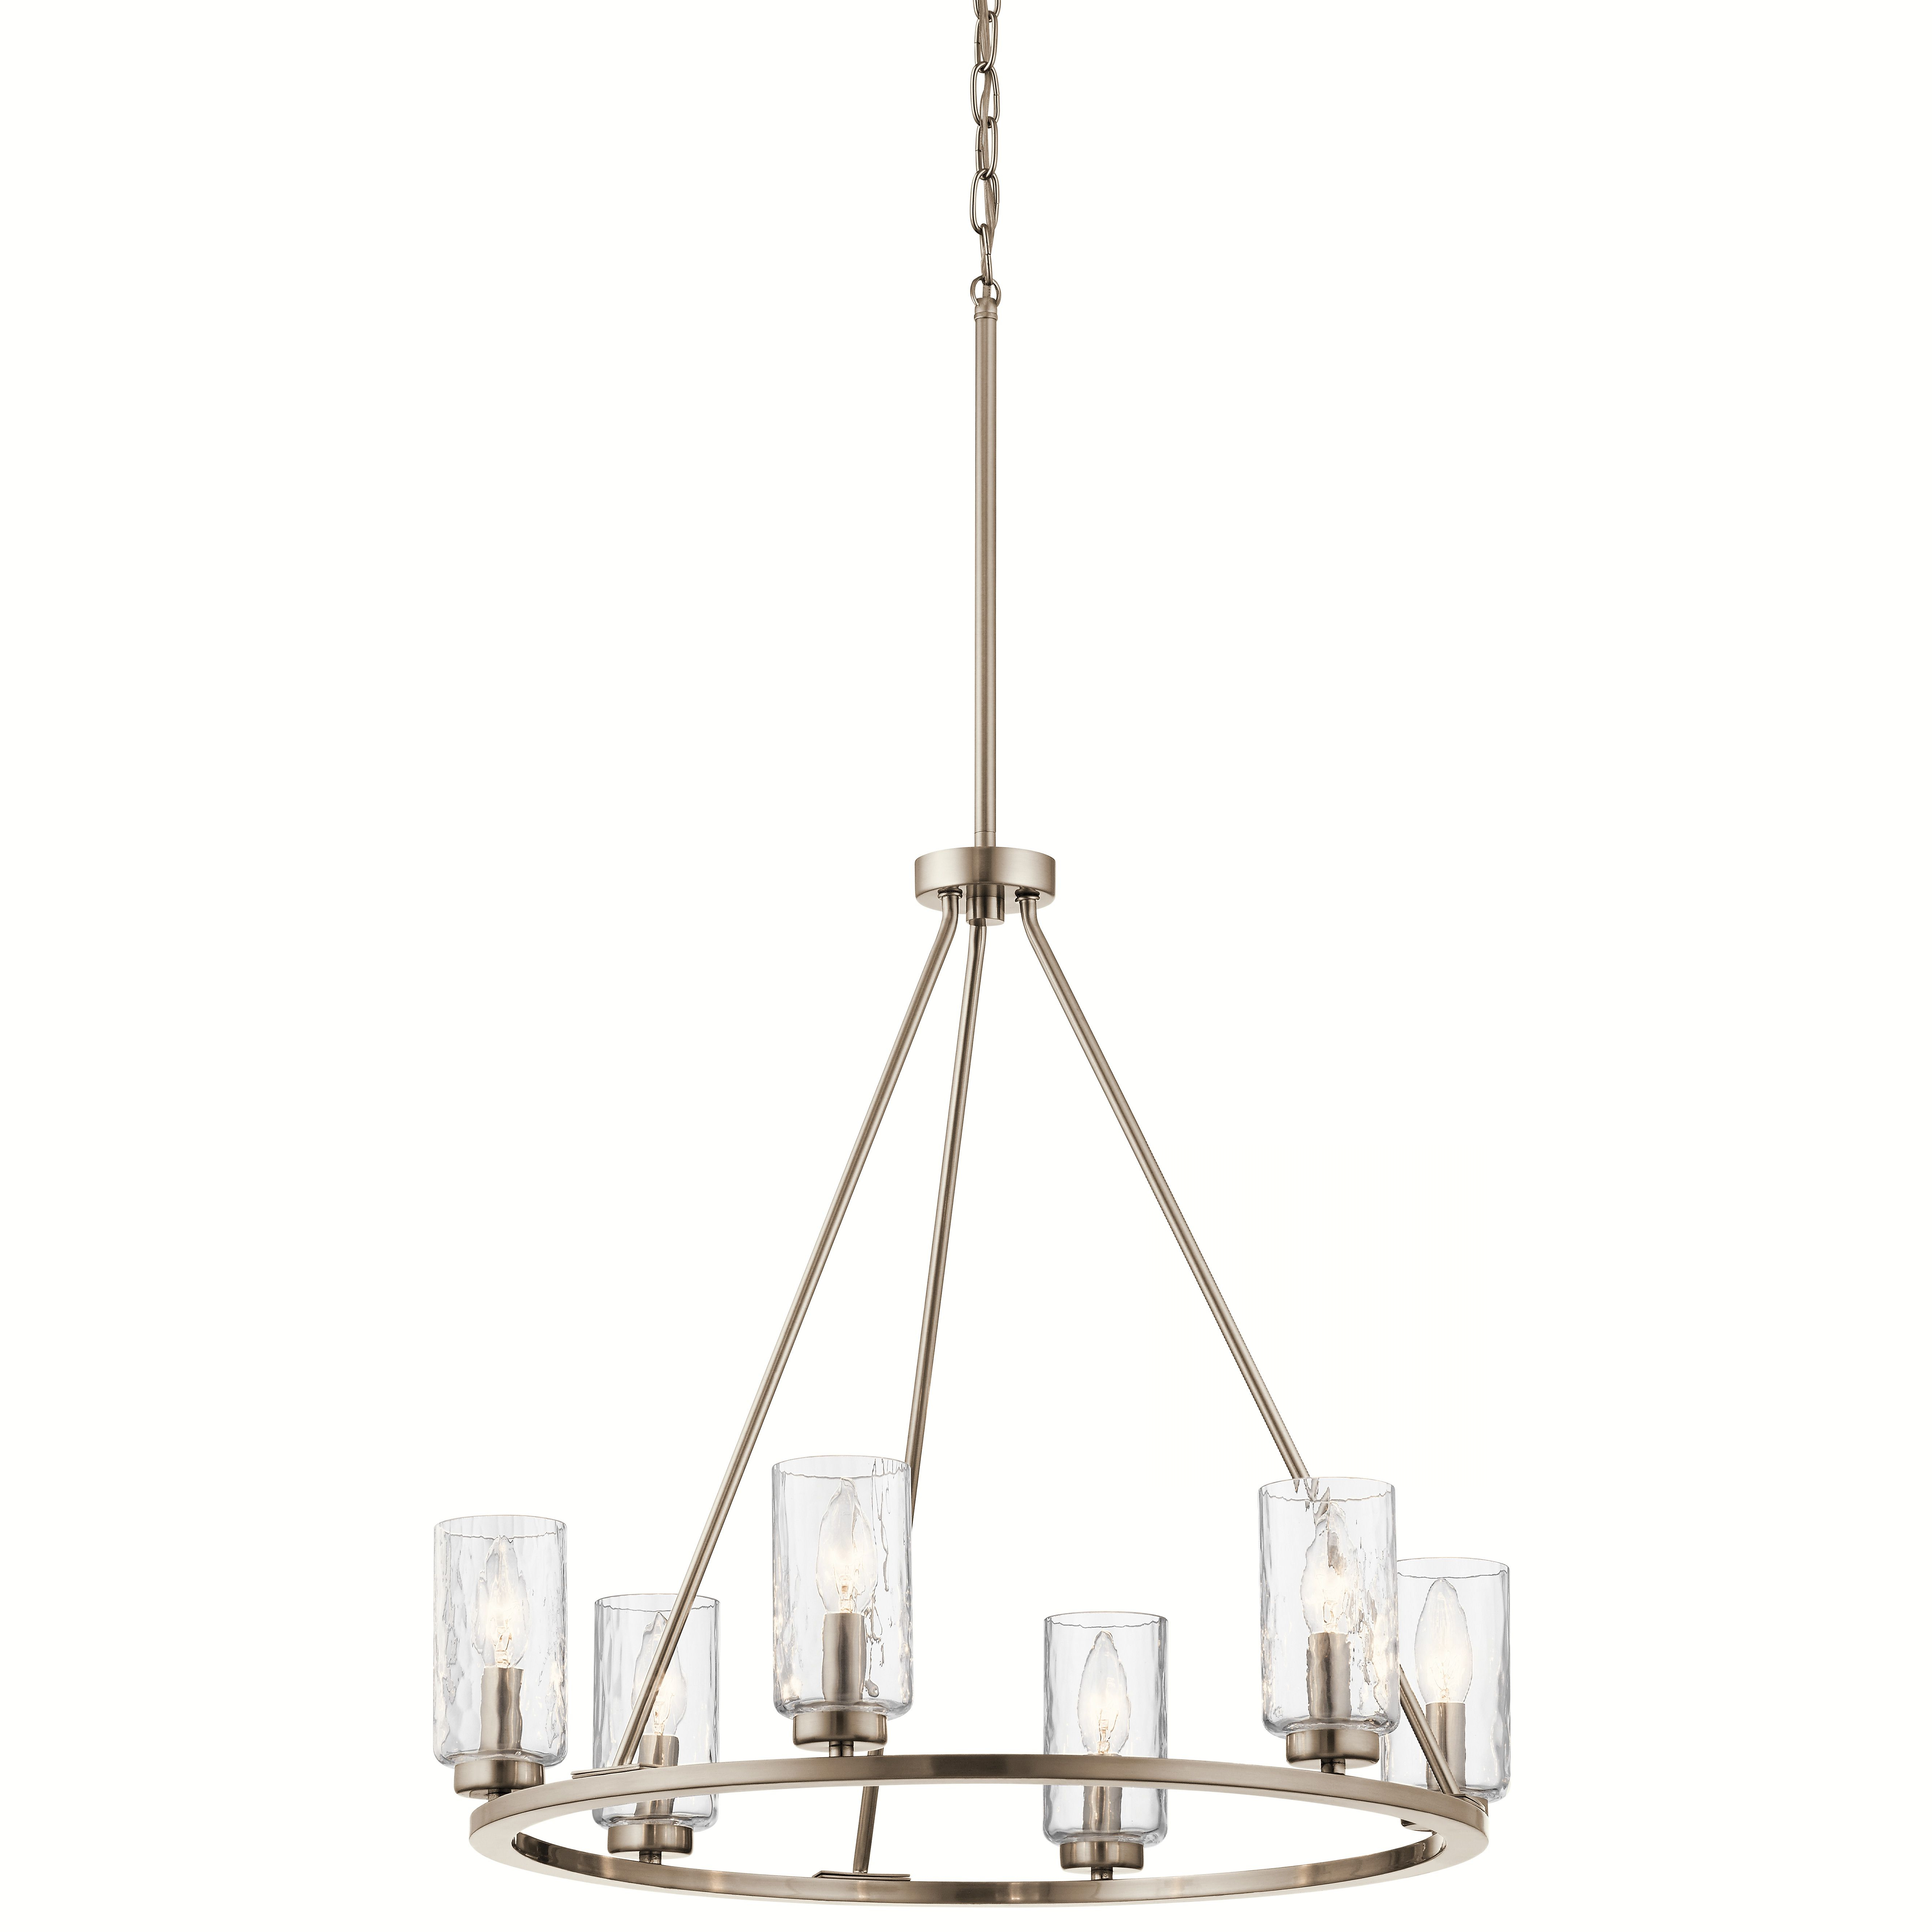 Kichler Marita 6 Light Brushed Nickel Transitional Textured Within Current Suki 5 Light Shaded Chandeliers (View 15 of 25)